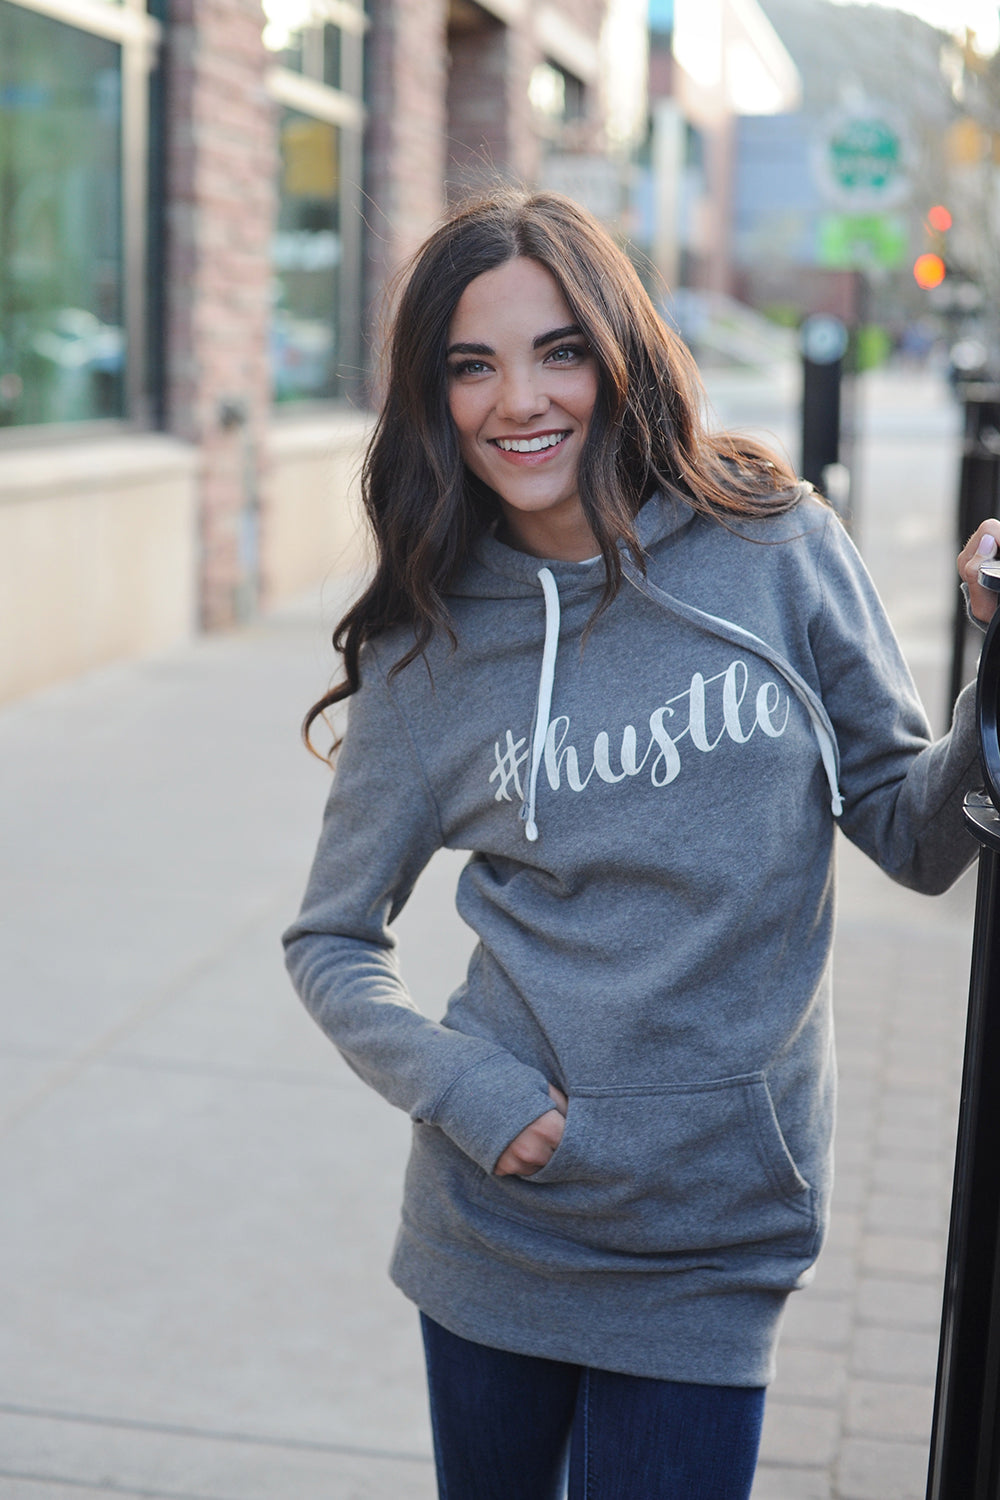 #hustle tunic length sweatshirt